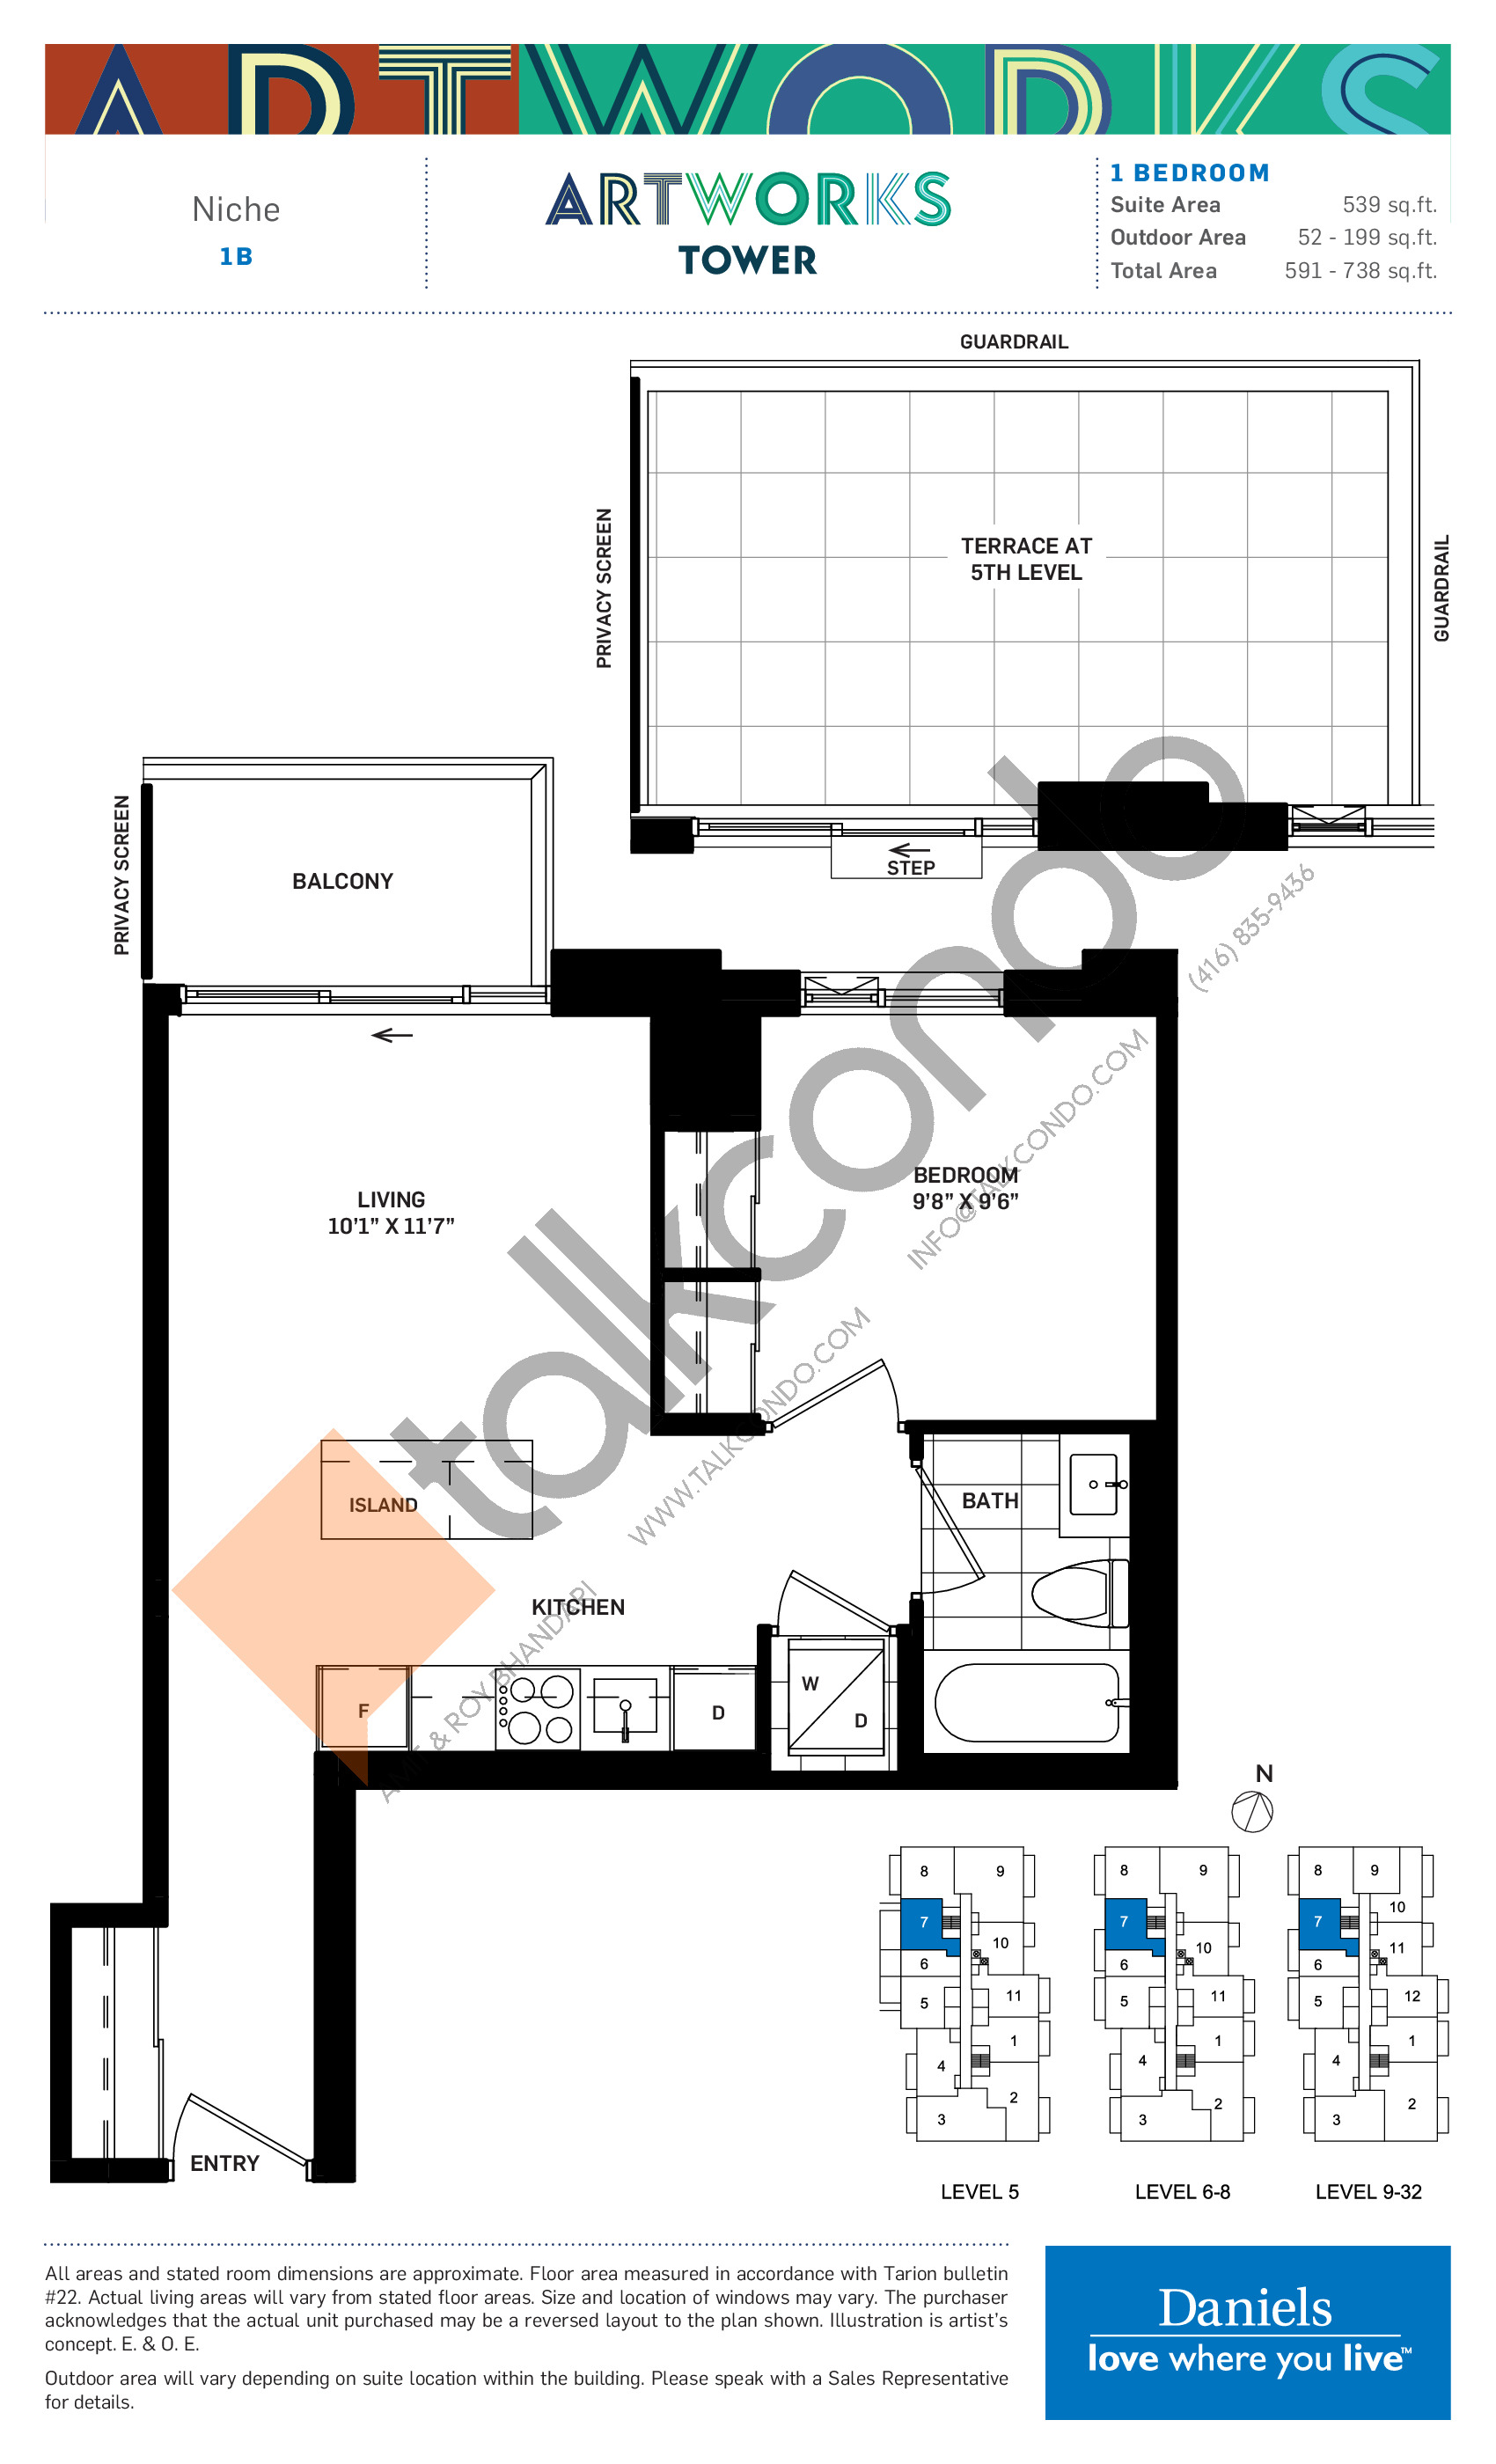 Niche Floor Plan at Artworks Tower Condos - 539 sq.ft